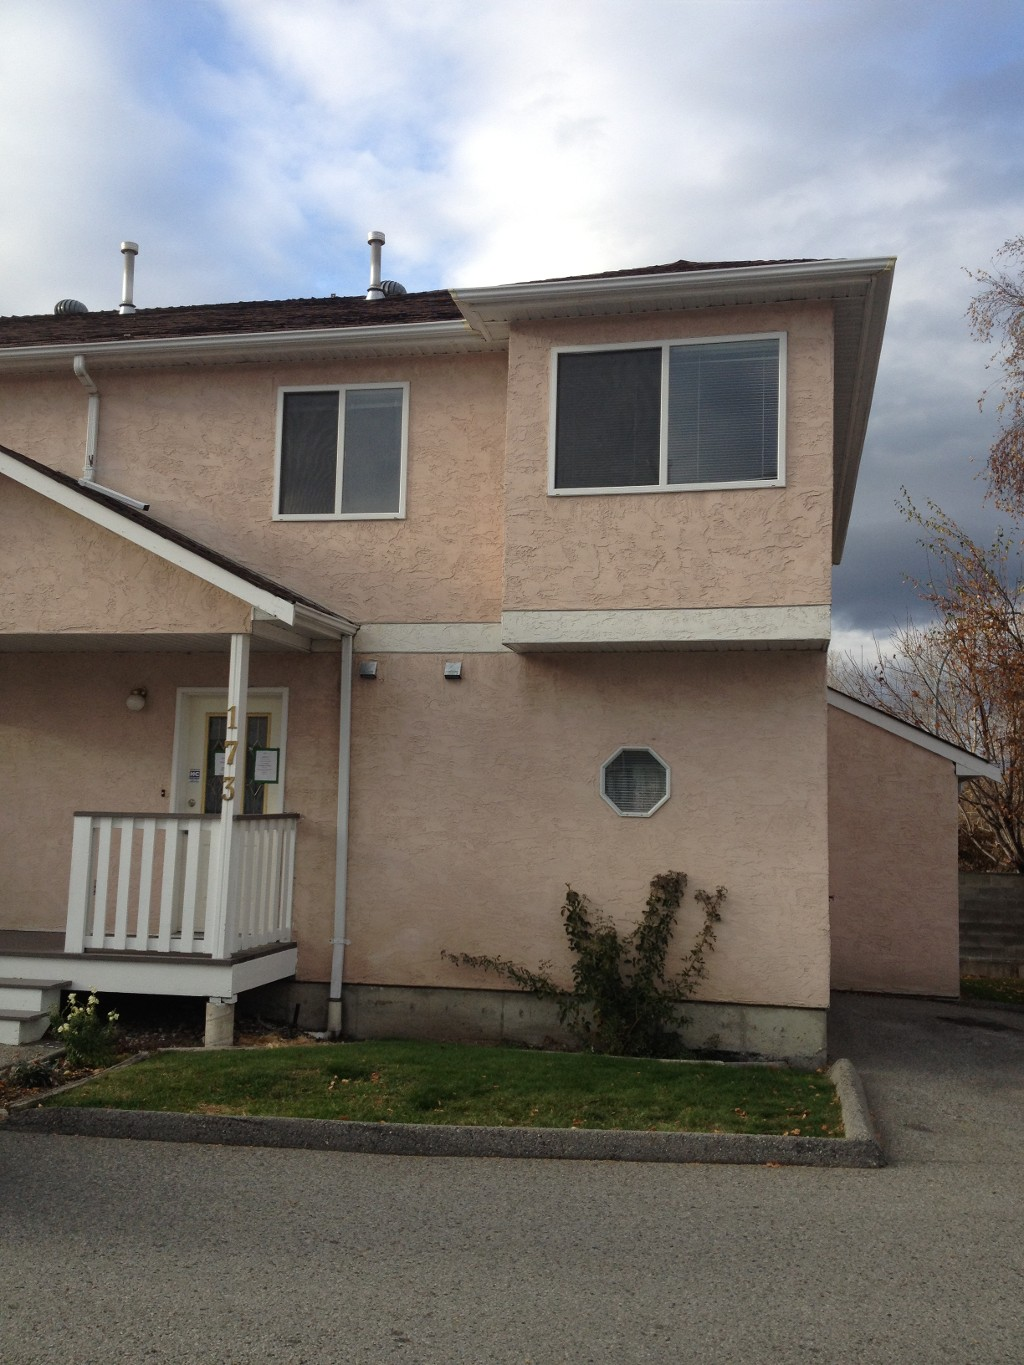 Main Photo: 173 1458 Penticton Avenue in Penticton: Columbia/Duncan Residential Attached for sale : MLS(r) # 140560